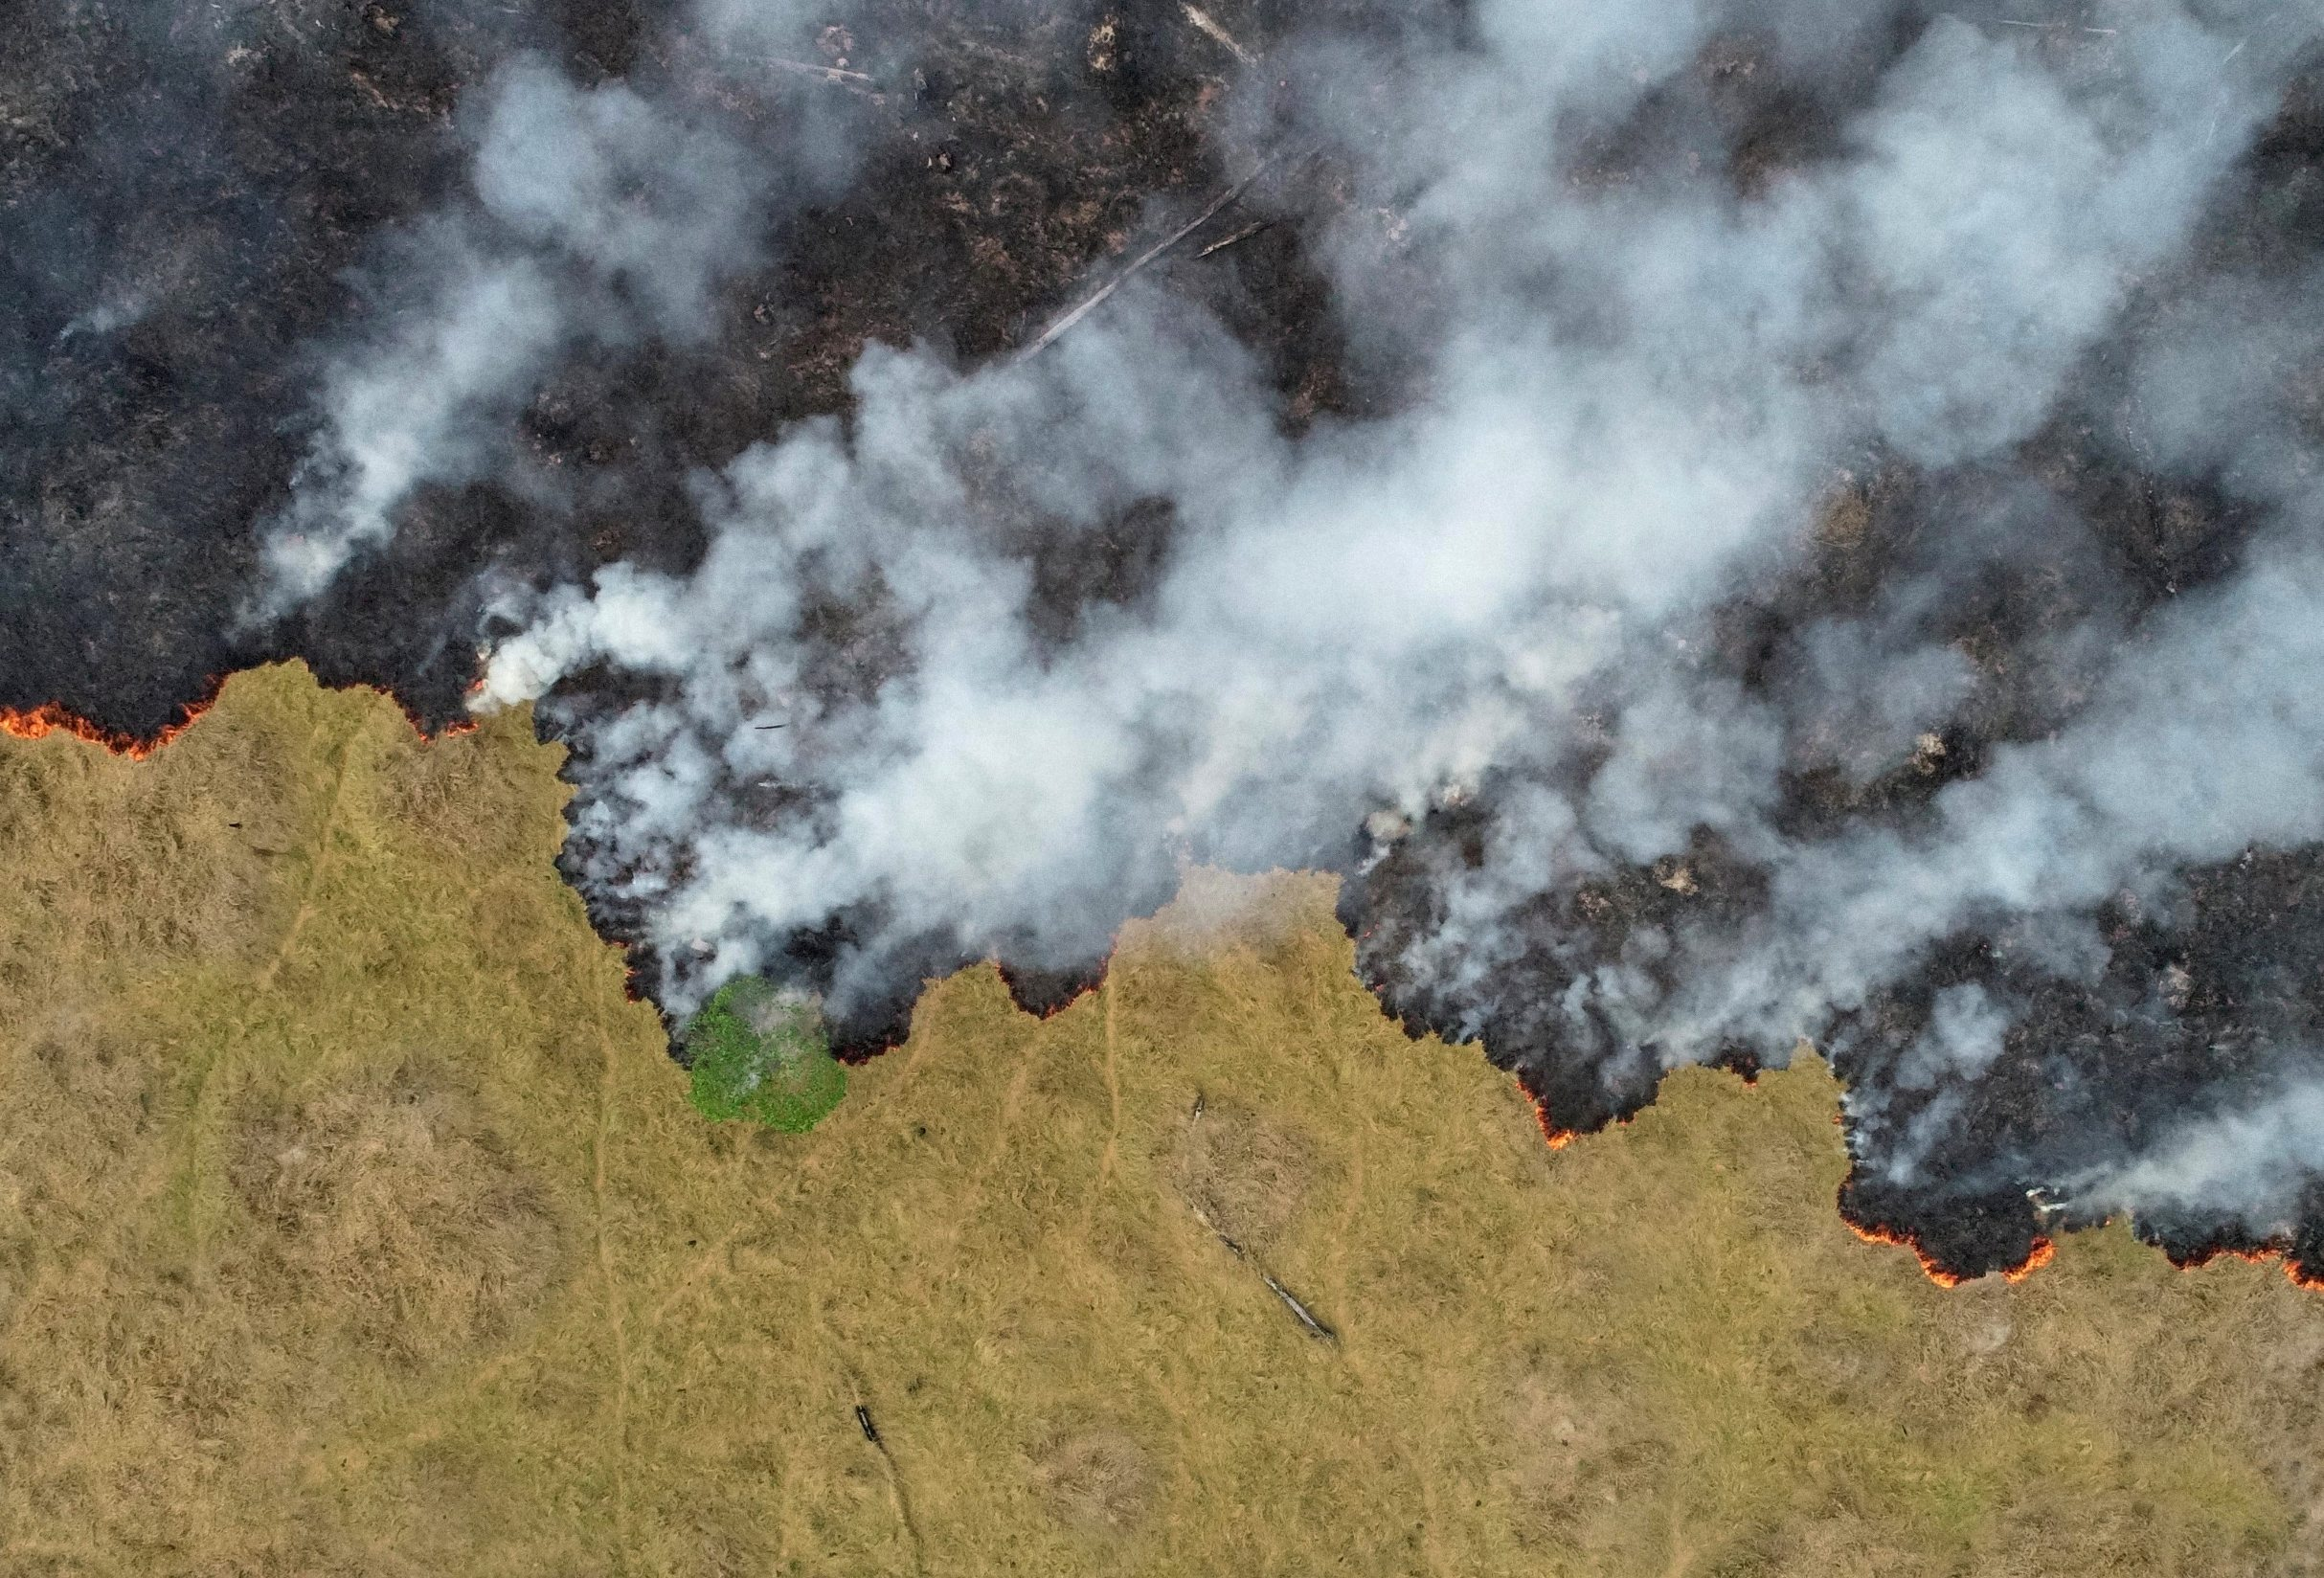 An aerial view shows smoke rising over a deforested plot of the Amazon jungle in Porto Velho, Rondonia State, Brazil, in this August 24, 2019 picture taken with a drone. Picture taken August 24, 2019. REUTERS/Ueslei Marcelino     TPX IMAGES OF THE DAY